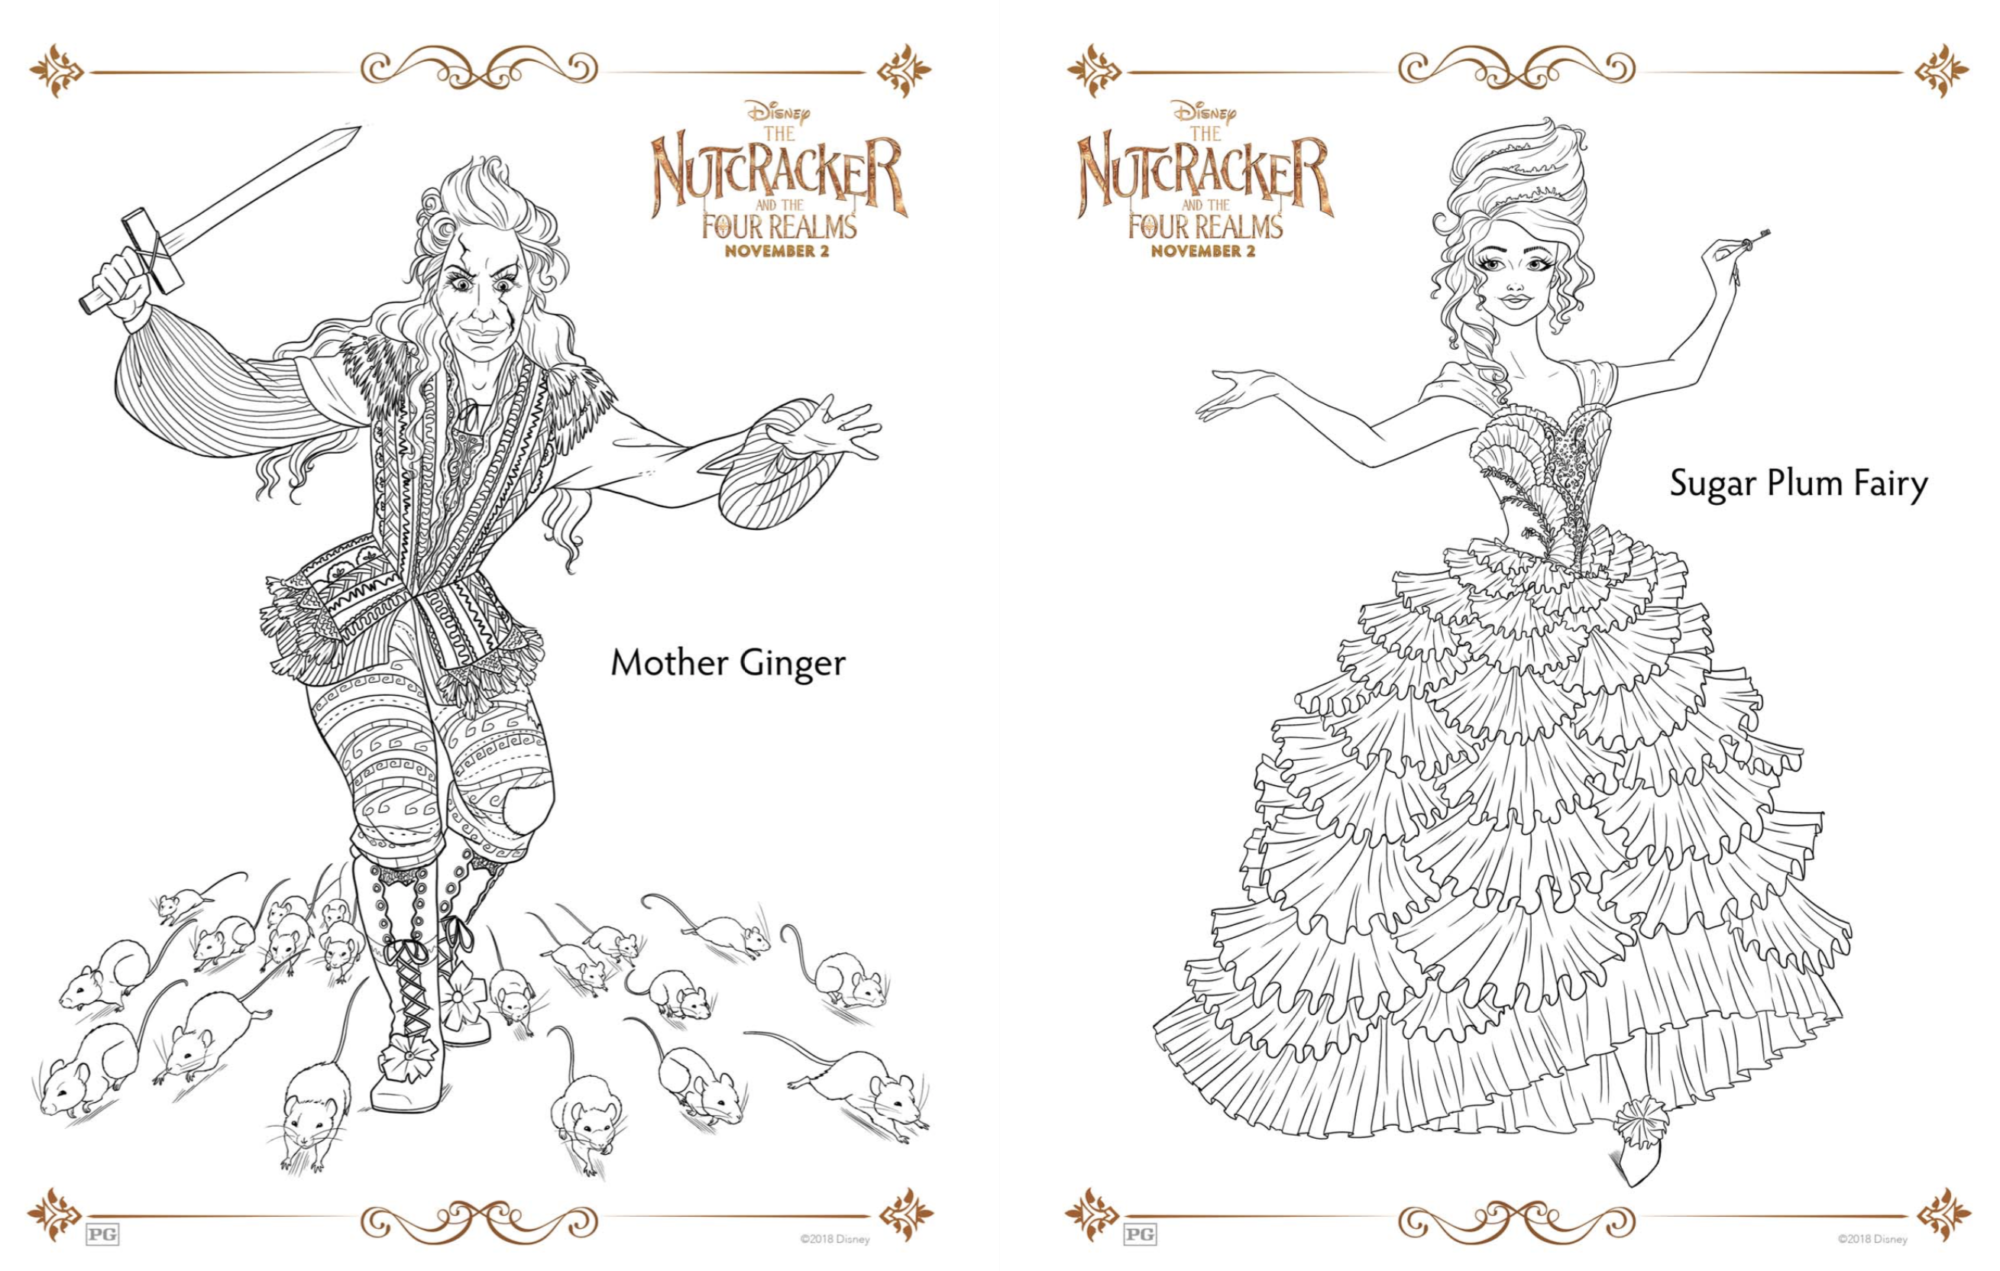 Disney Nutcracker coloring pages